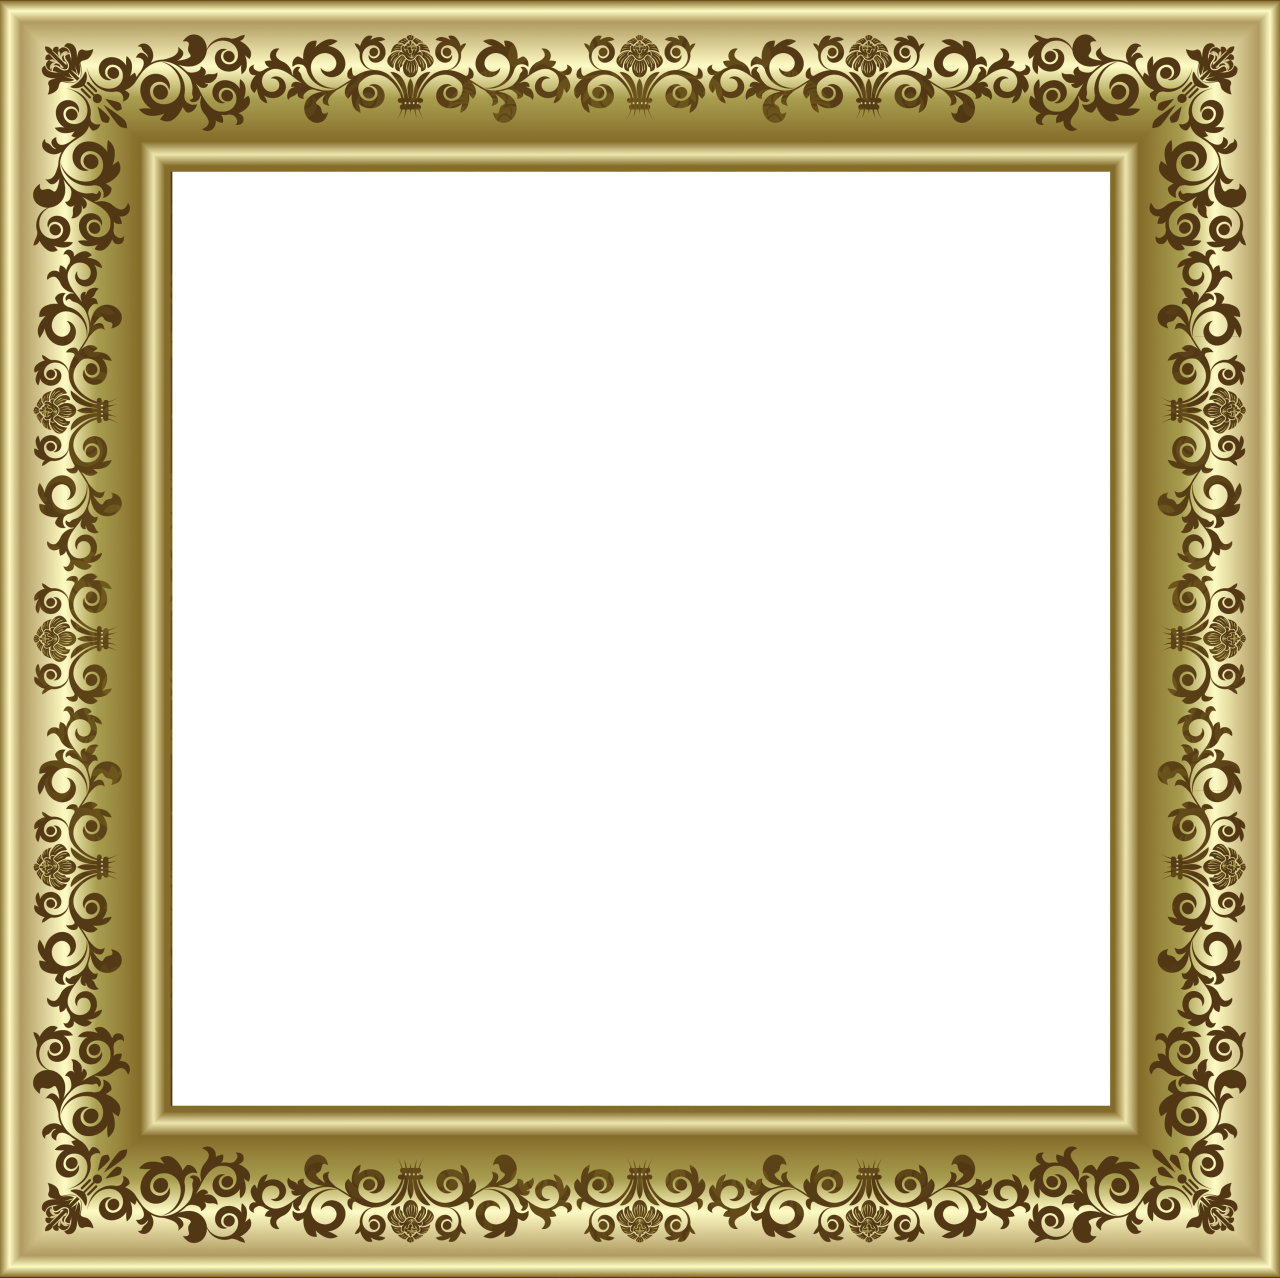 Vintage photo frame png. Gold with brown ornaments